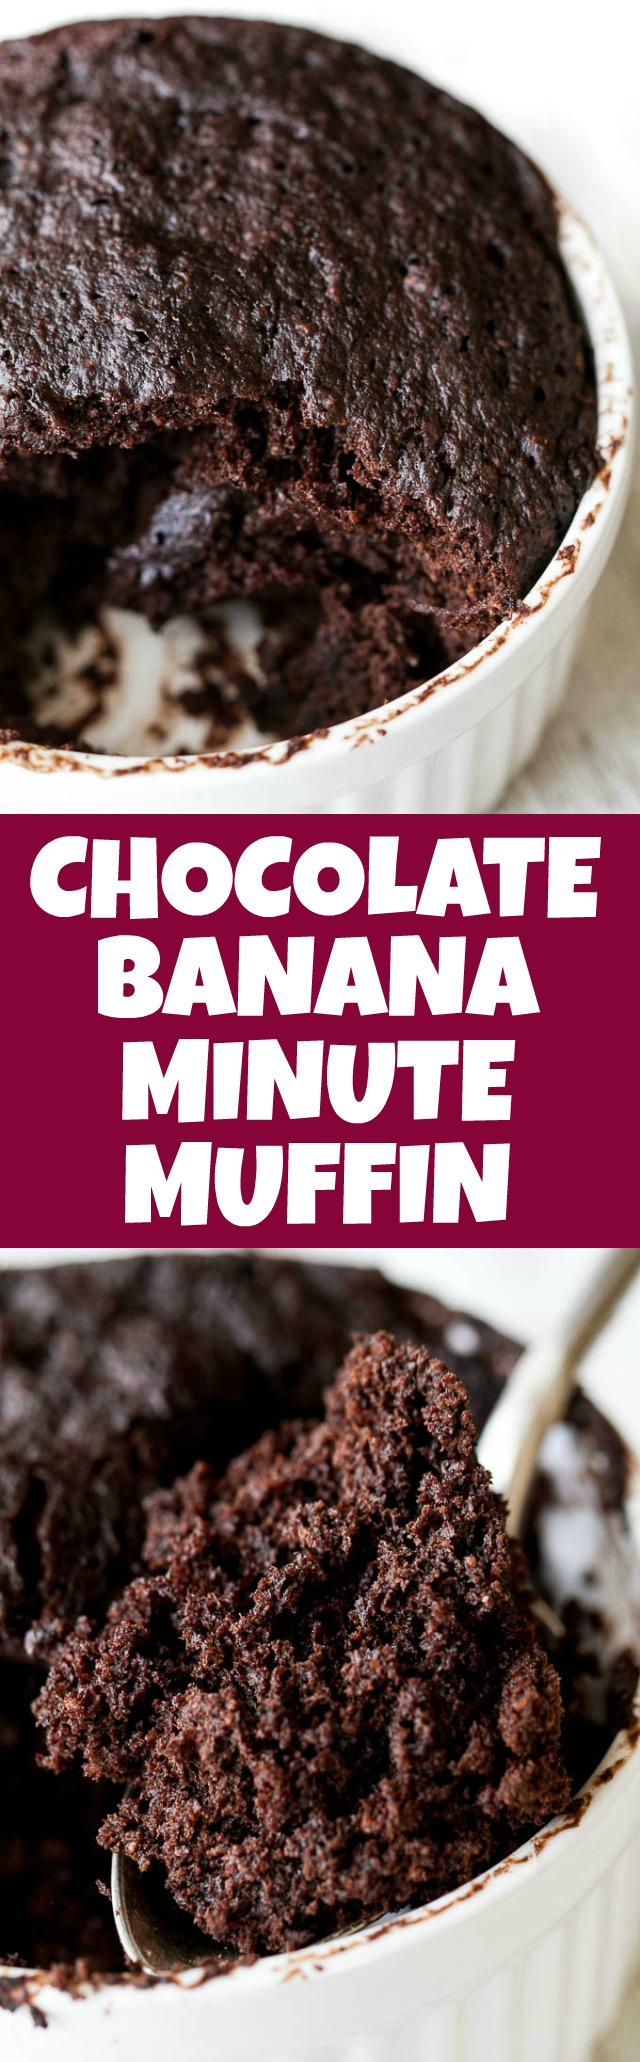 This chocolate banana minute muffin is a perfect way to satisfy those chocolate cravings and takes under 5 minutes to make! It's vegan, gluten-free, nut-free, and made with wholesome ingredients, but so light, tender, and chocolatey that you'd never guess it was healthy! | runningwithspoons.com #recipe #vegan #glutenfree #chocolate #healthy #dessert